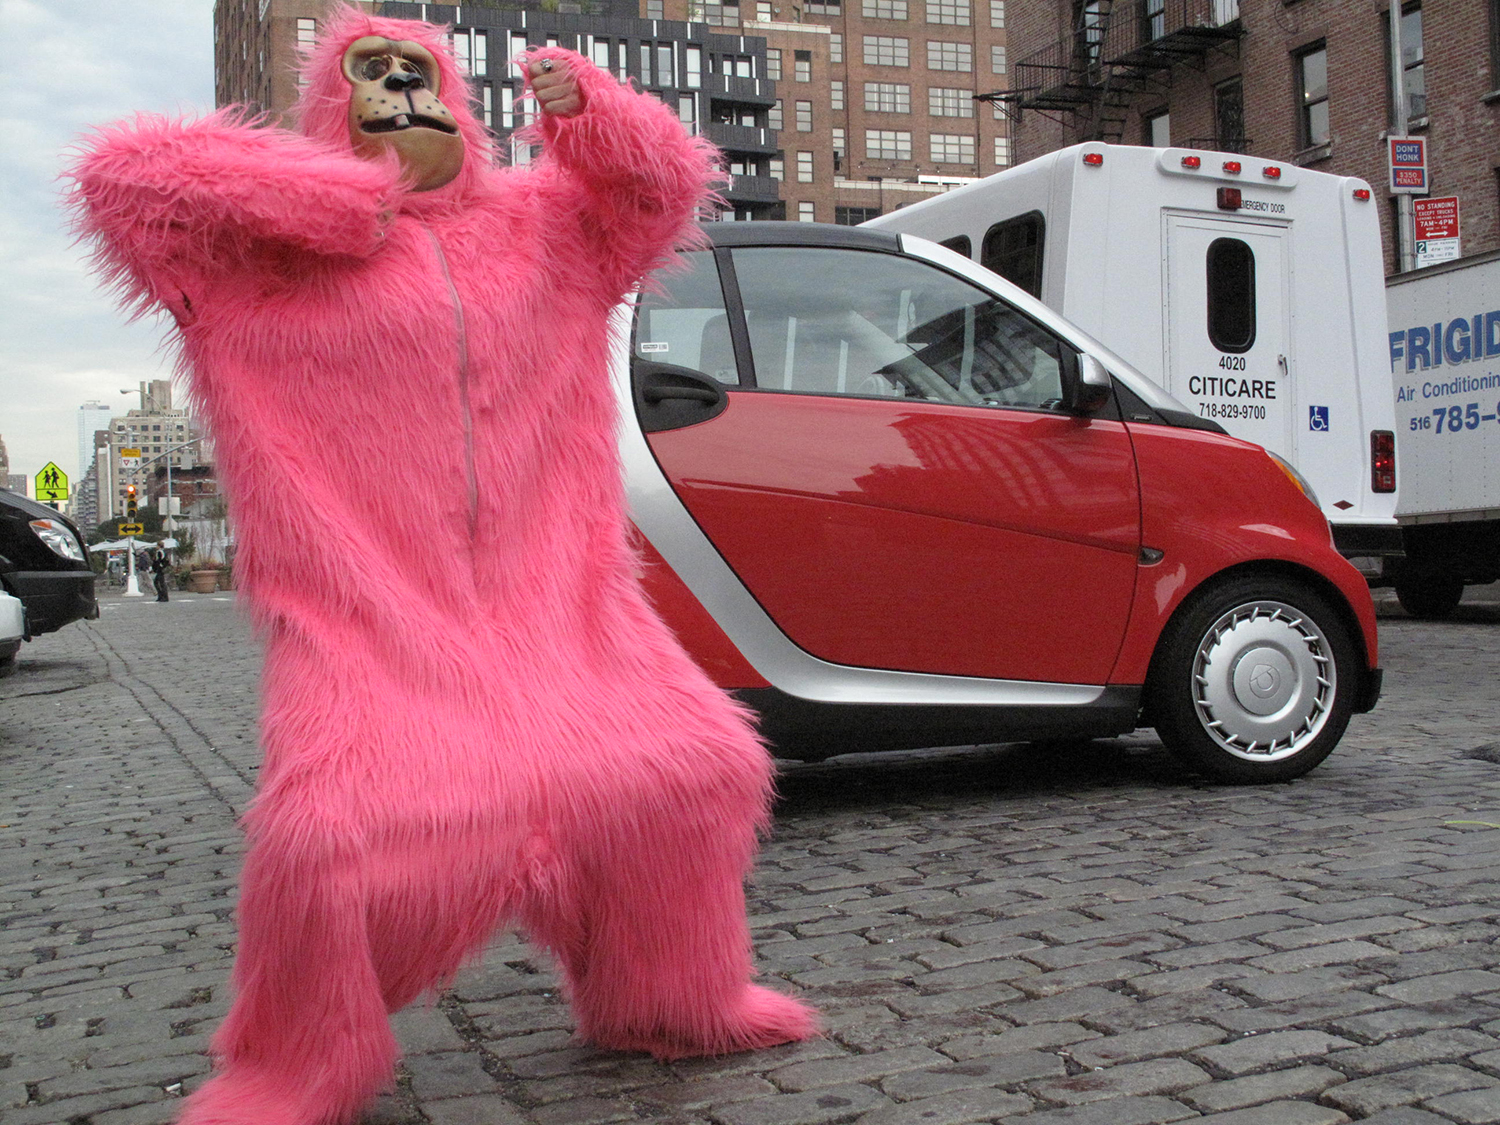 Me like Smart Car and bananas.  Krista appears as the pink gorilla body double in some shots in the commercial.